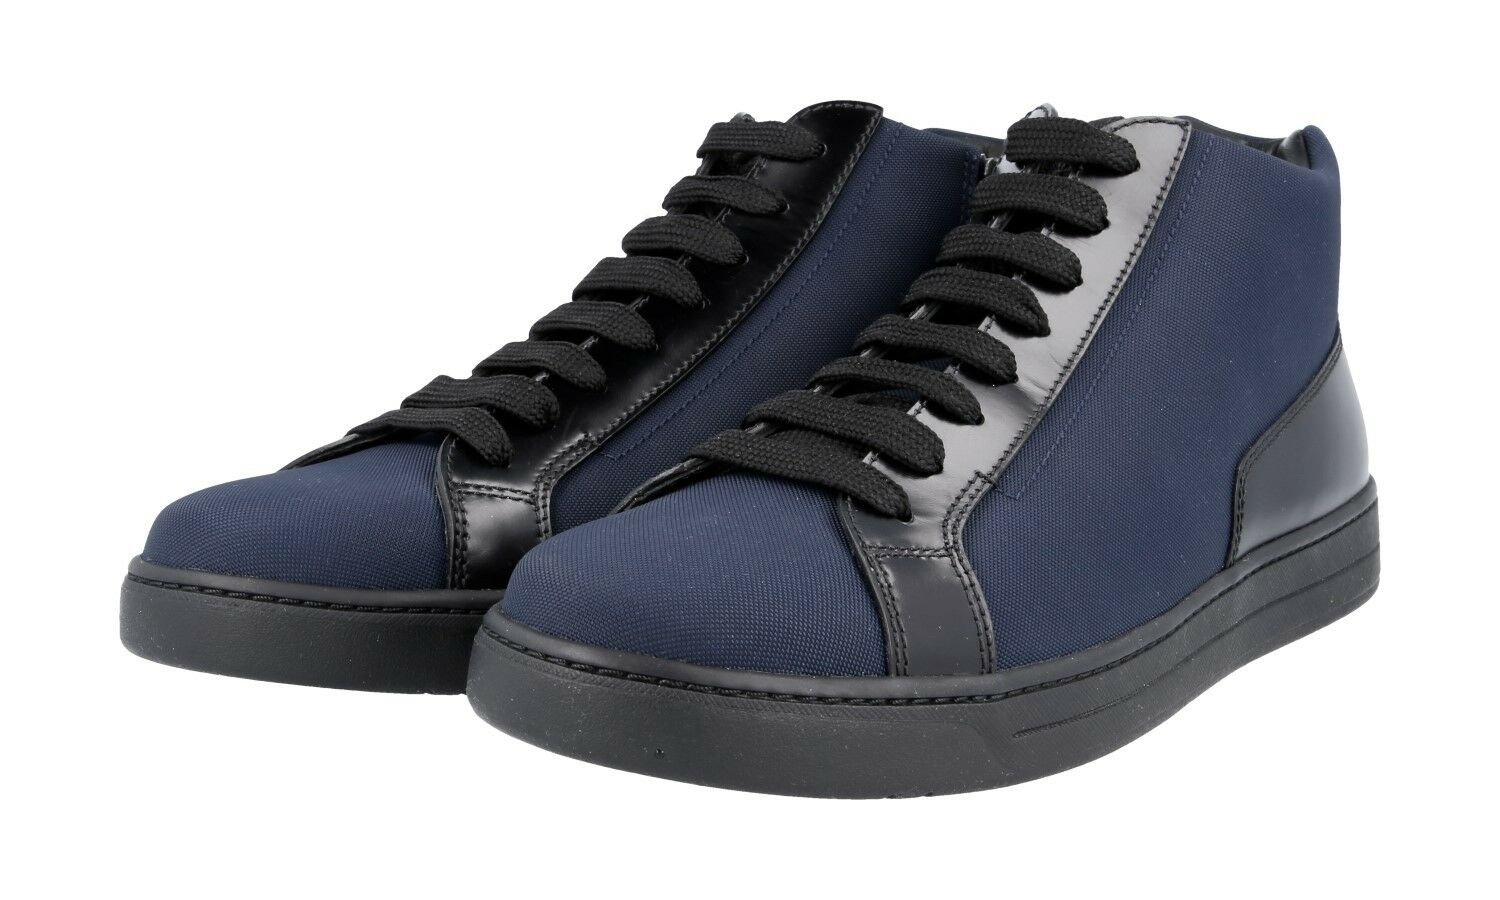 LUXUS PRADA HIGH TOP SNEAKER Zapatos 4T2998 BLAU 43 NEU NEW 8,5 42,5 43 BLAU 4bef75